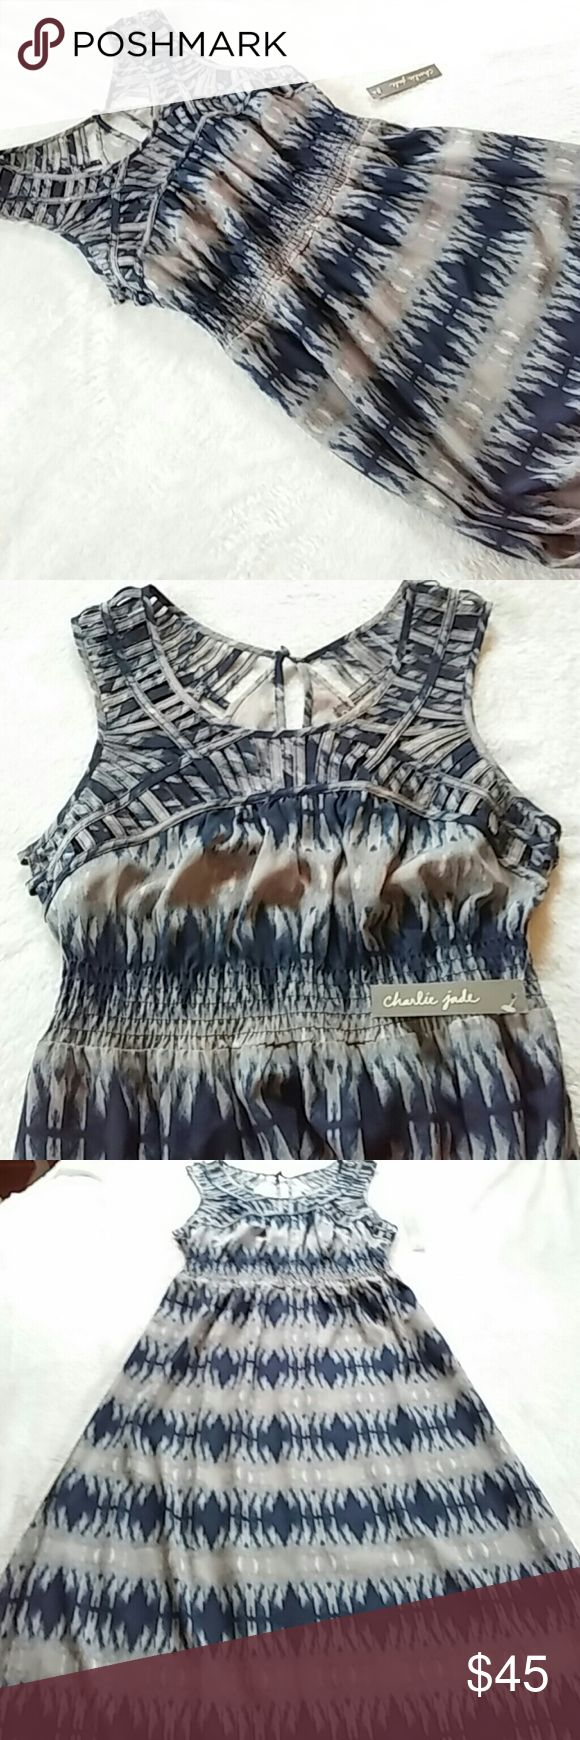 "🆕 Listing! NWT Charlie Jade Maxi Dress Gorgeous Charlie Jade maxi dress in shades of gray, cream and dark blue with an ikat print. Unique caged design on neckline, shoulders and around the back. Smocked waist. About 15.5"" pit to pit. 13"" waist not stretched. Stretches out to about 16"". About 58"" long. Extra button included. 100% polyester. Charlie Jade Dresses Maxi"